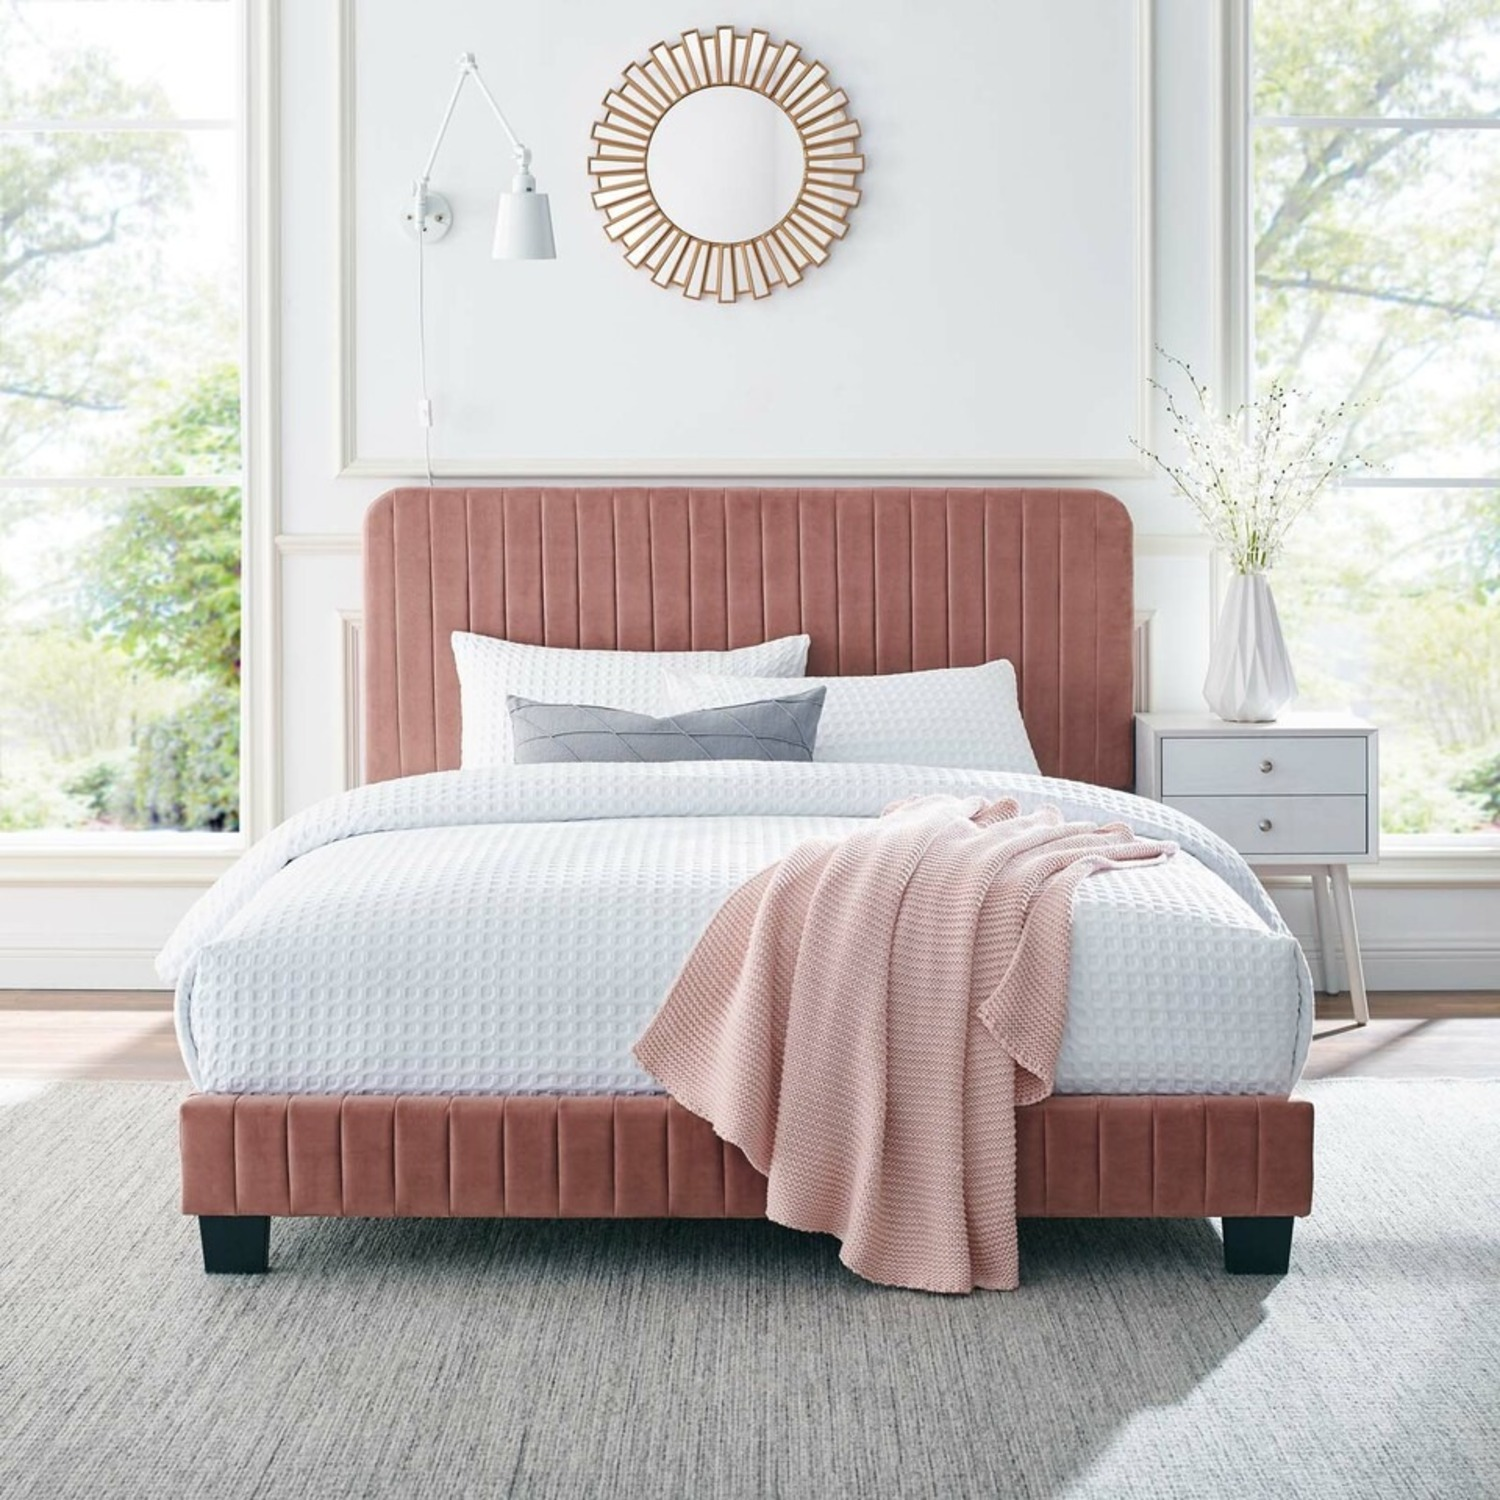 Twin Bed In Dusty Rose Tufted Velvet Fabric Finish - image-7